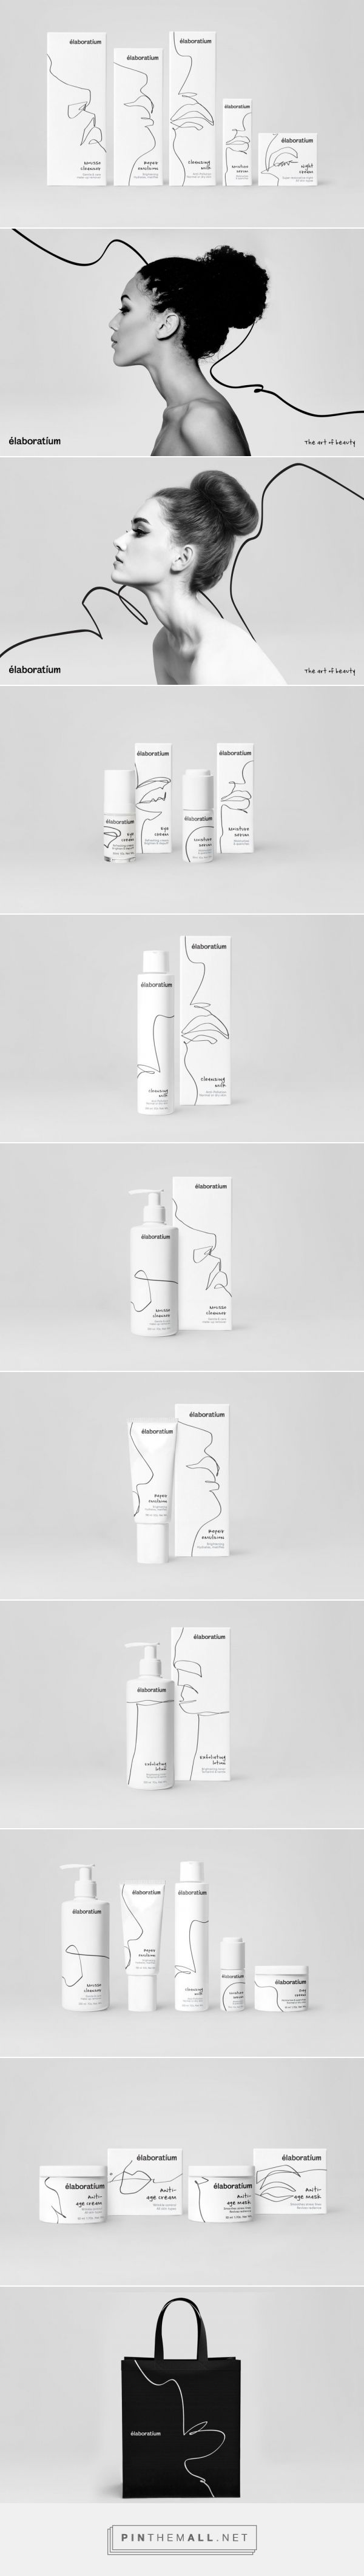 A Concept of How Art Makes the World More Beautiful, and Cosmetics Helps Women to Maintain Their Beauty PACKAGING DESIGN | design by Stepan Solodkov